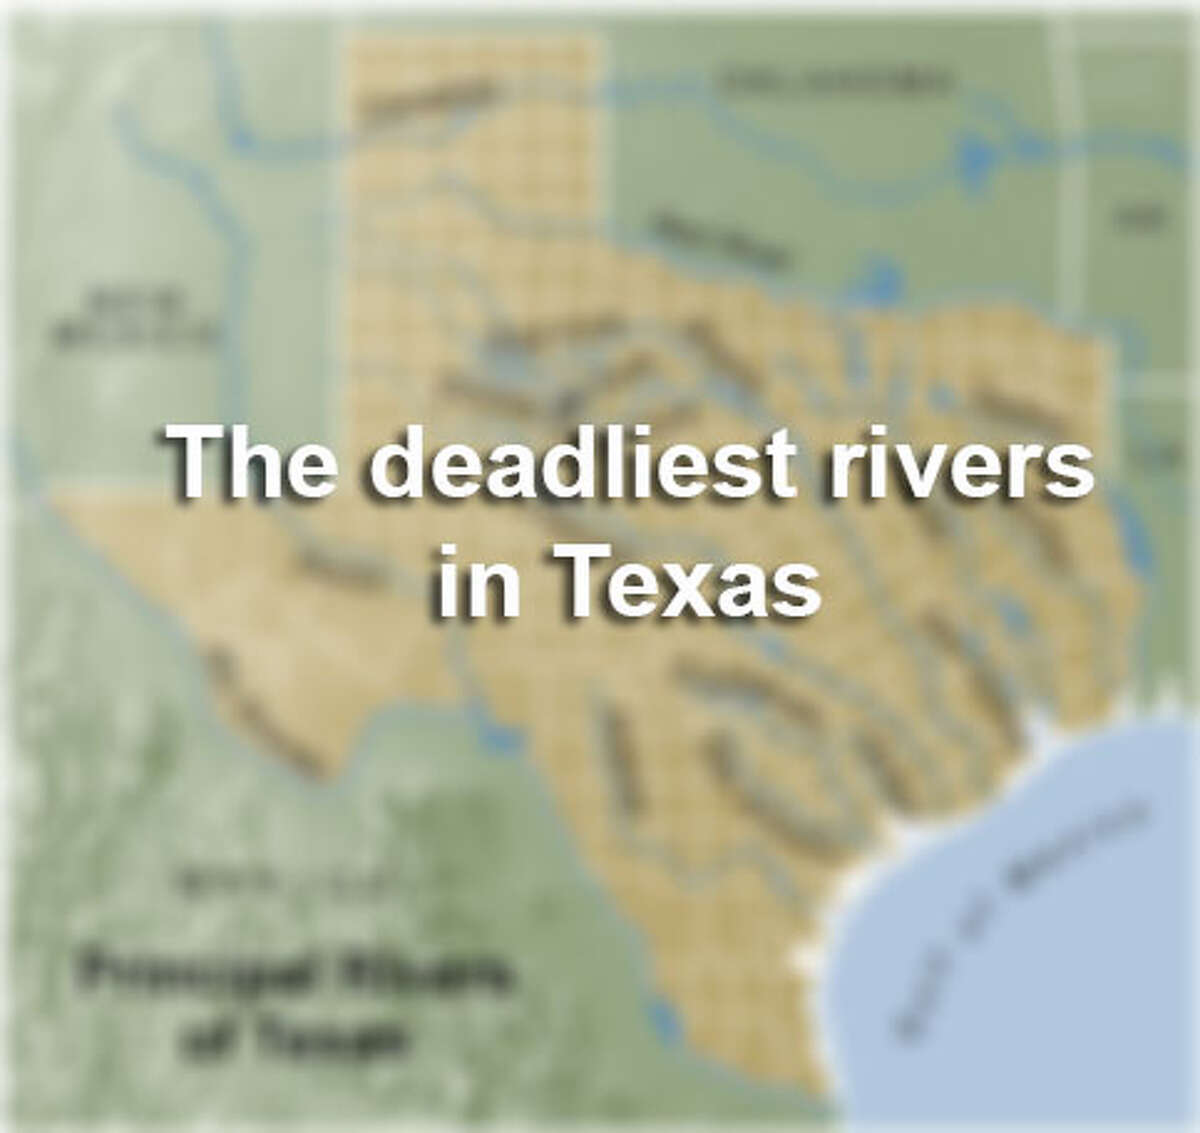 At least 125 people died on rivers in Texas since 2010. Explore this gallery to see the 12 rivers in the Lone Star State that have had more than two reported deaths since 2010. Explore this Express-News database for all 125 deaths sorted by river, cause and date.